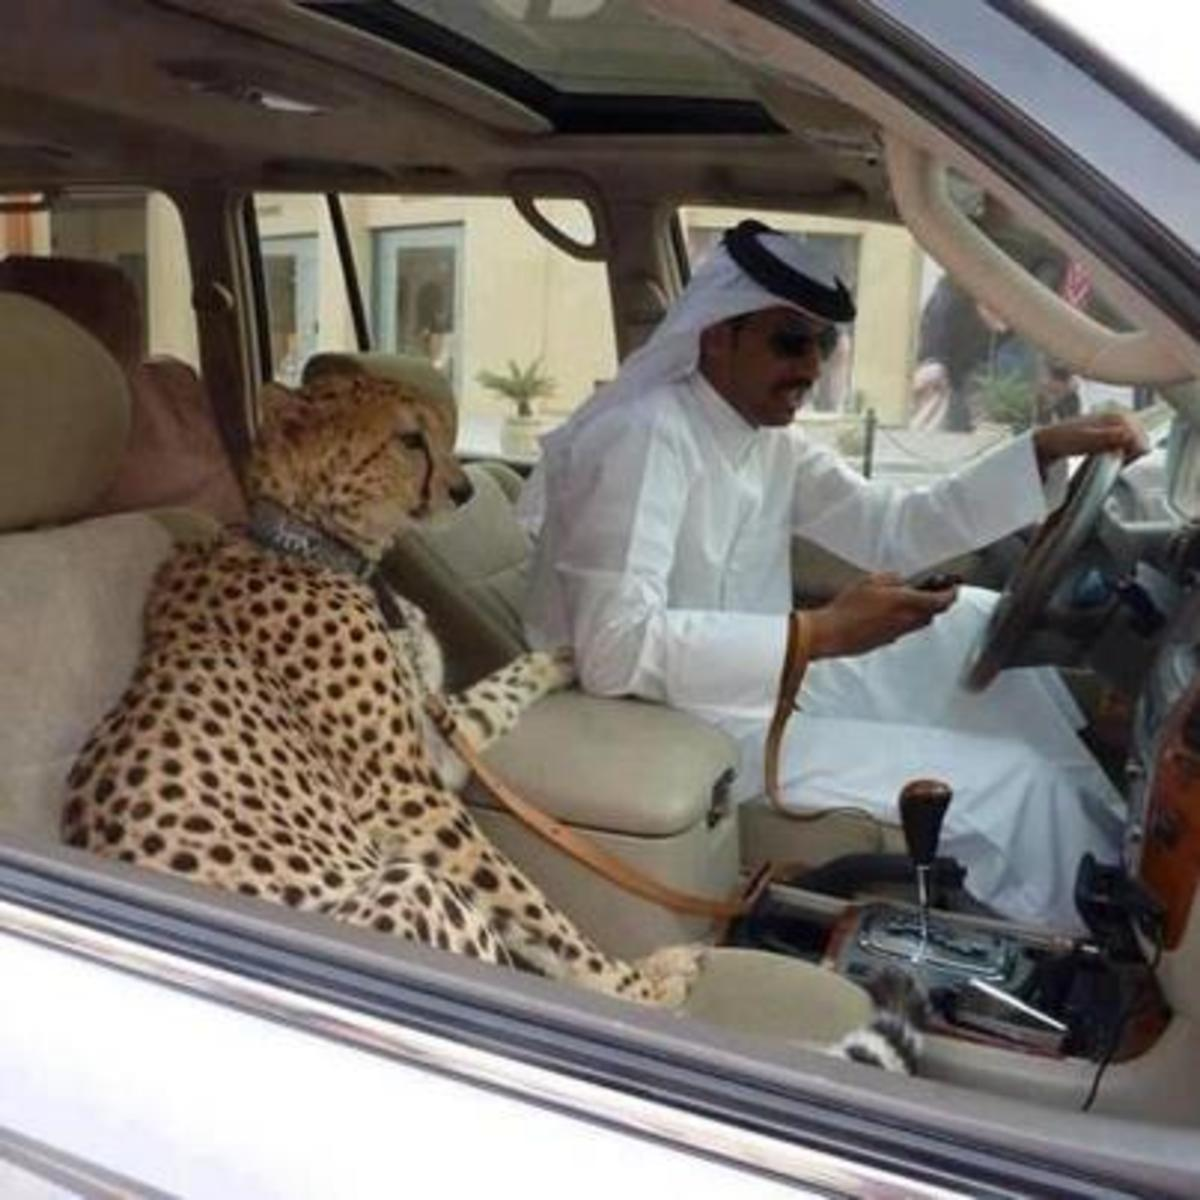 Cheetahs are status symbols for the wealthy because they are expensive and often illegal to obtain.